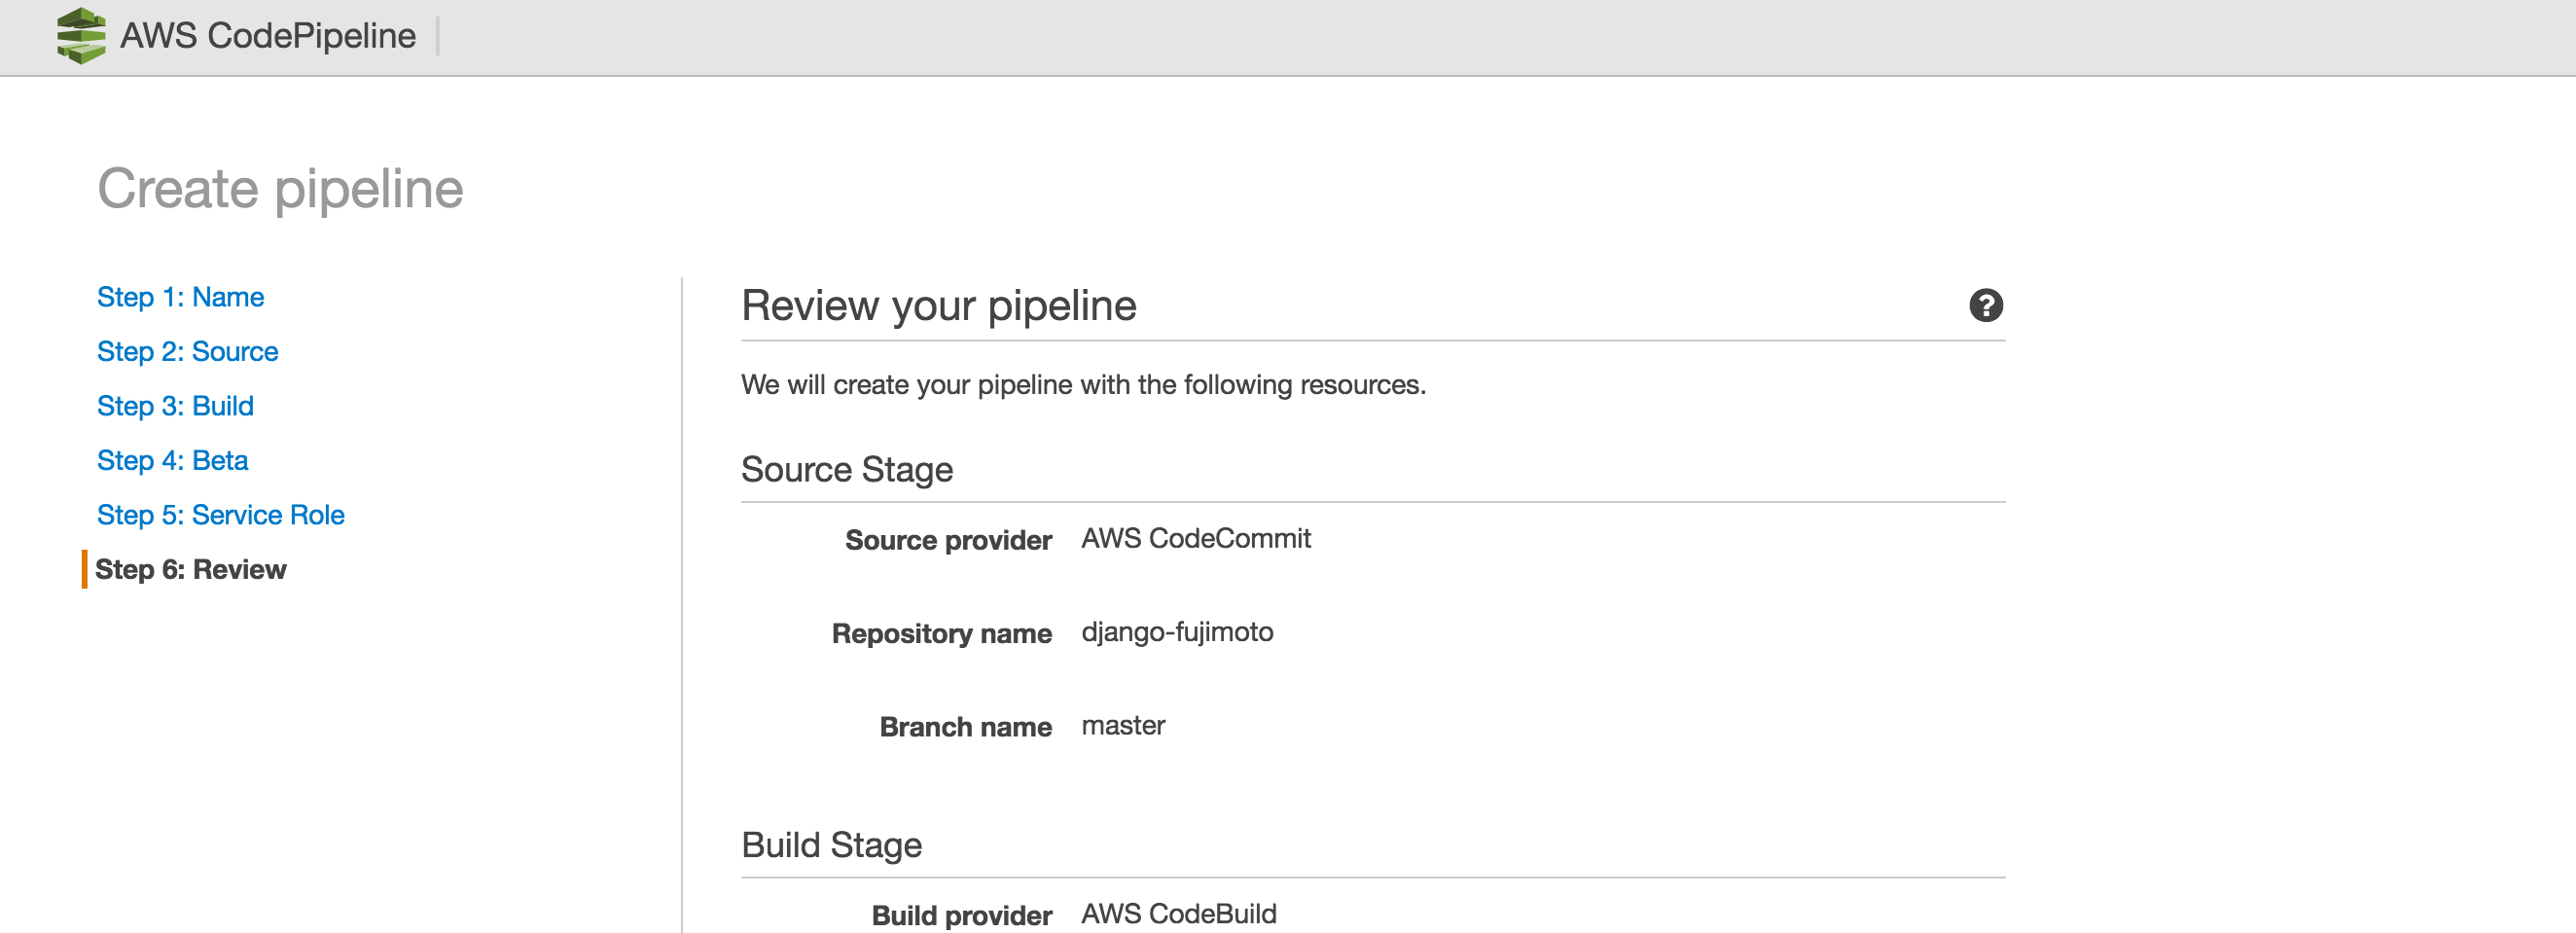 AWS_CodePipeline_Management_Console 8